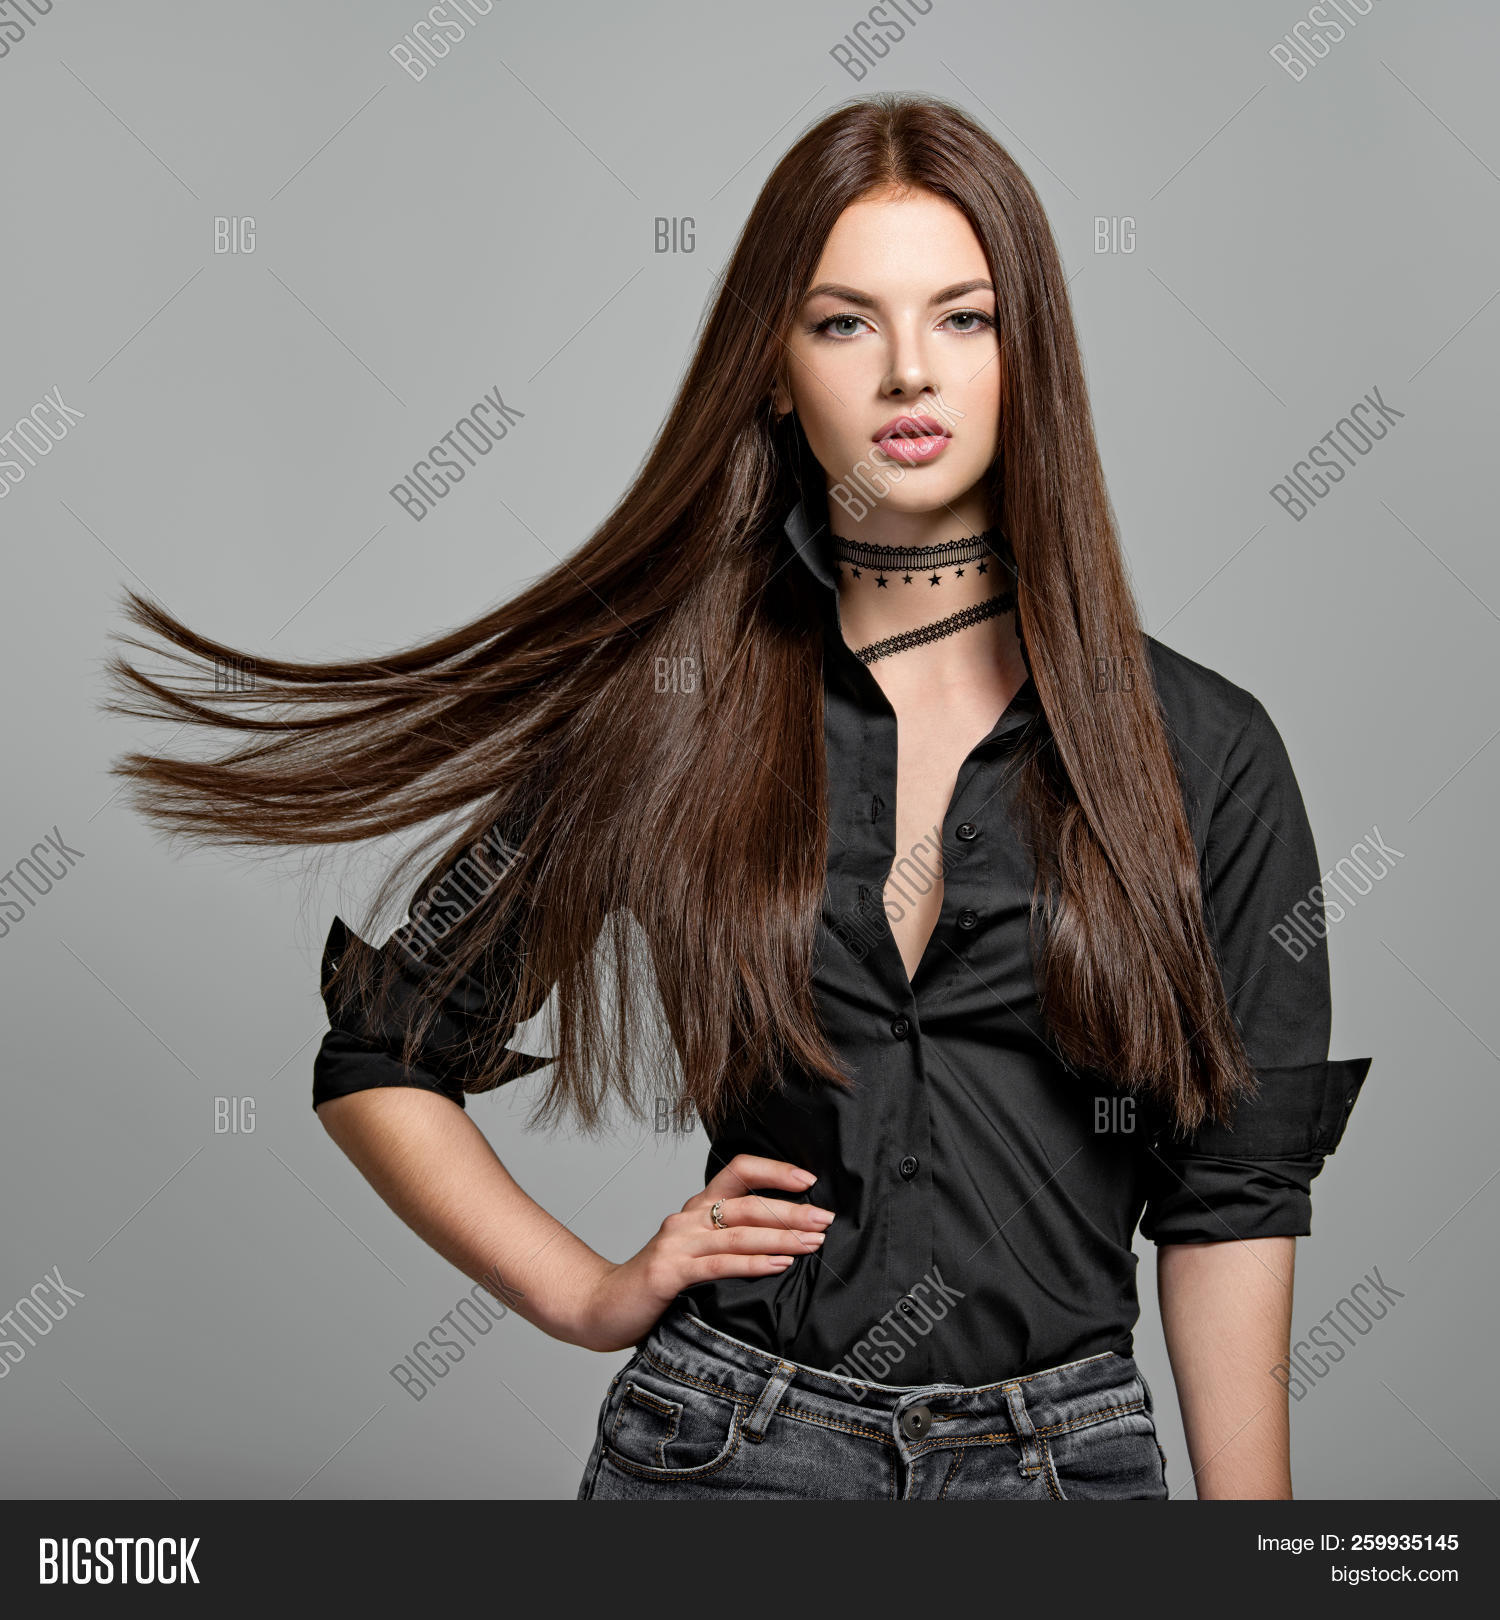 beautiful,beauty,black hair,brown hair,brunette,caucasian,fashion,female,girl,glamour,glossy,gray background,hairstyle,long,long hair,model,one,portrait,posing,pretty,shirt,straight,straight hair,studio,style,stylish,woman